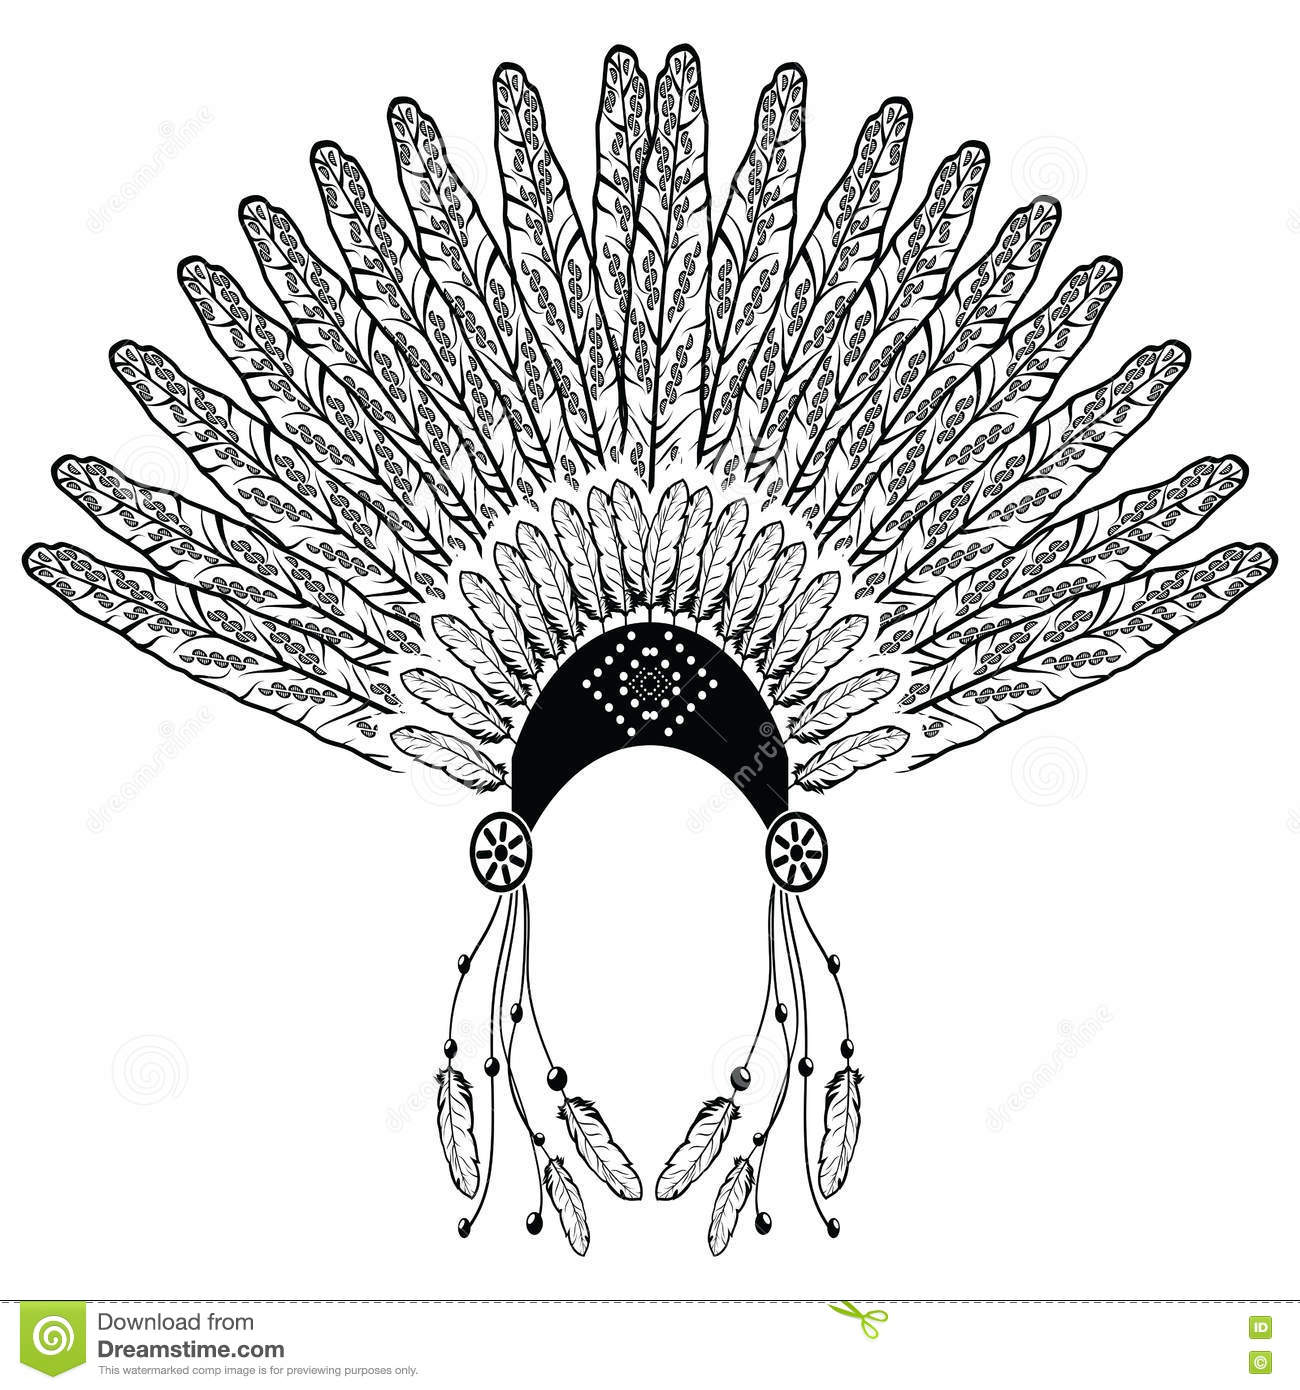 22f17a4259d56 Aztec, ethnic style headdress with decorative and plain feathers, beads  symbolizing native American warrior